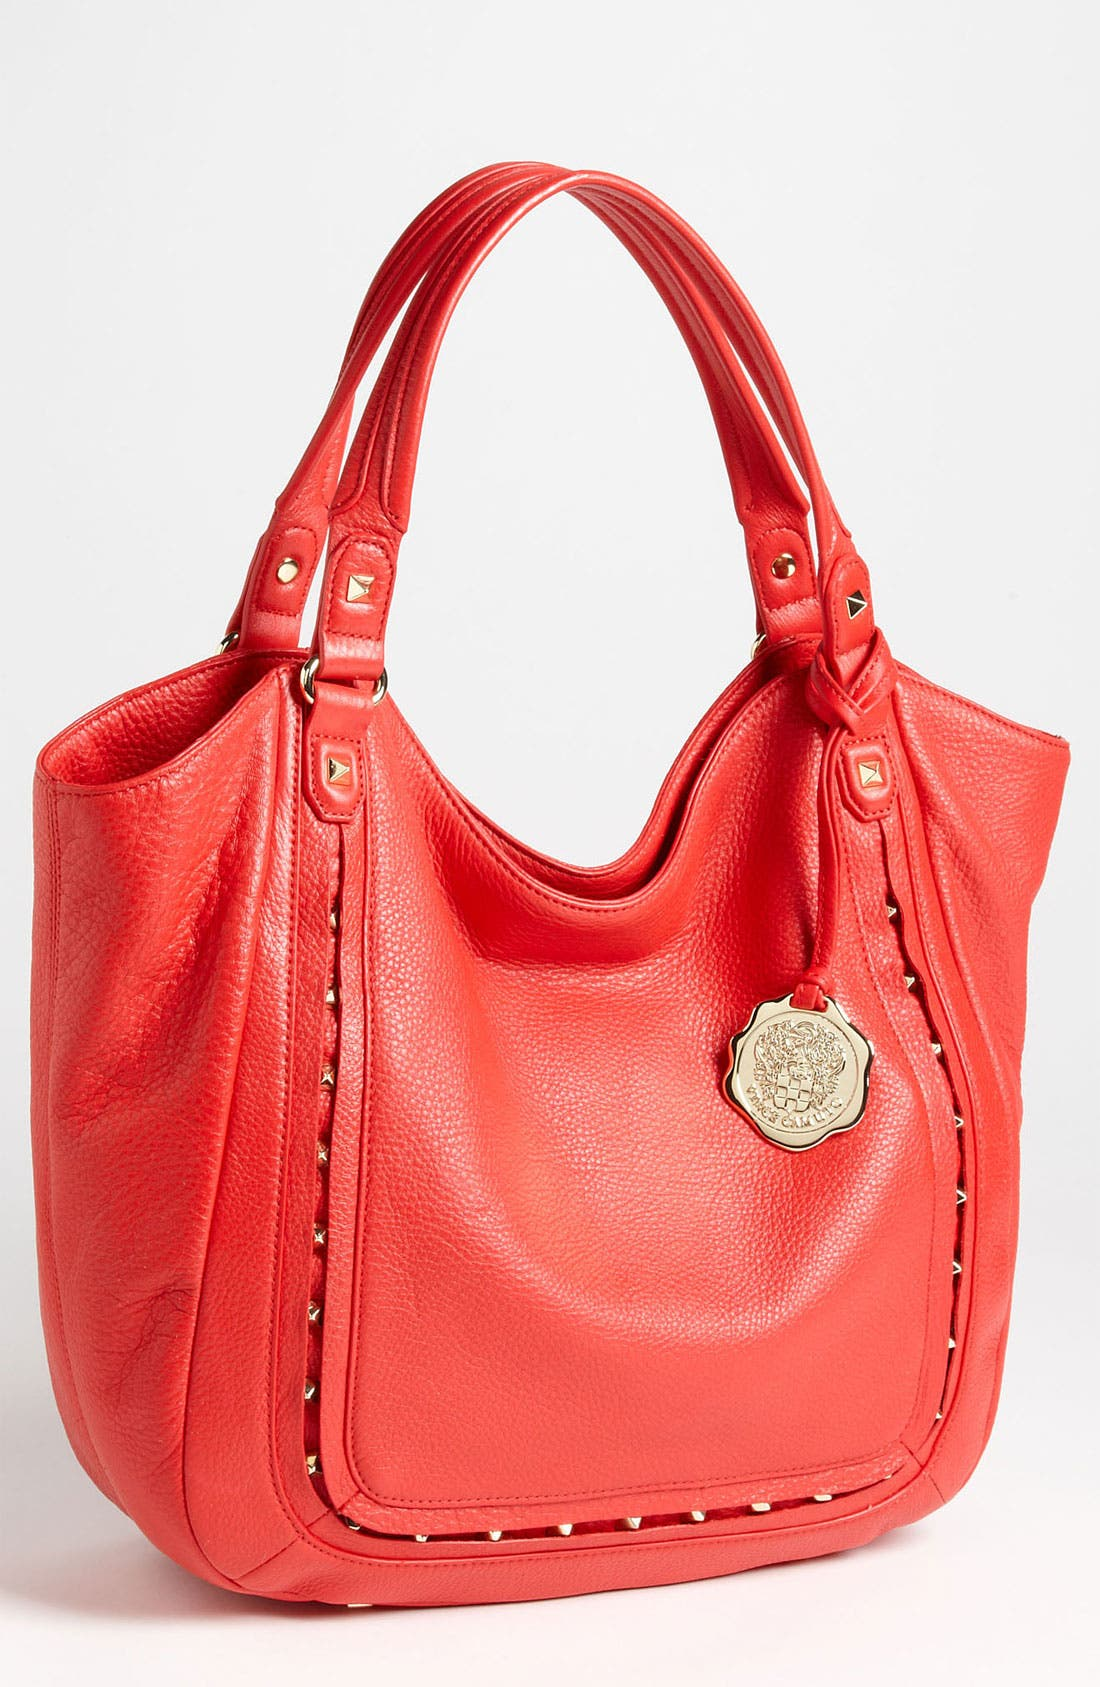 Alternate Image 1 Selected - Vince Camuto 'Ila 2' Tote